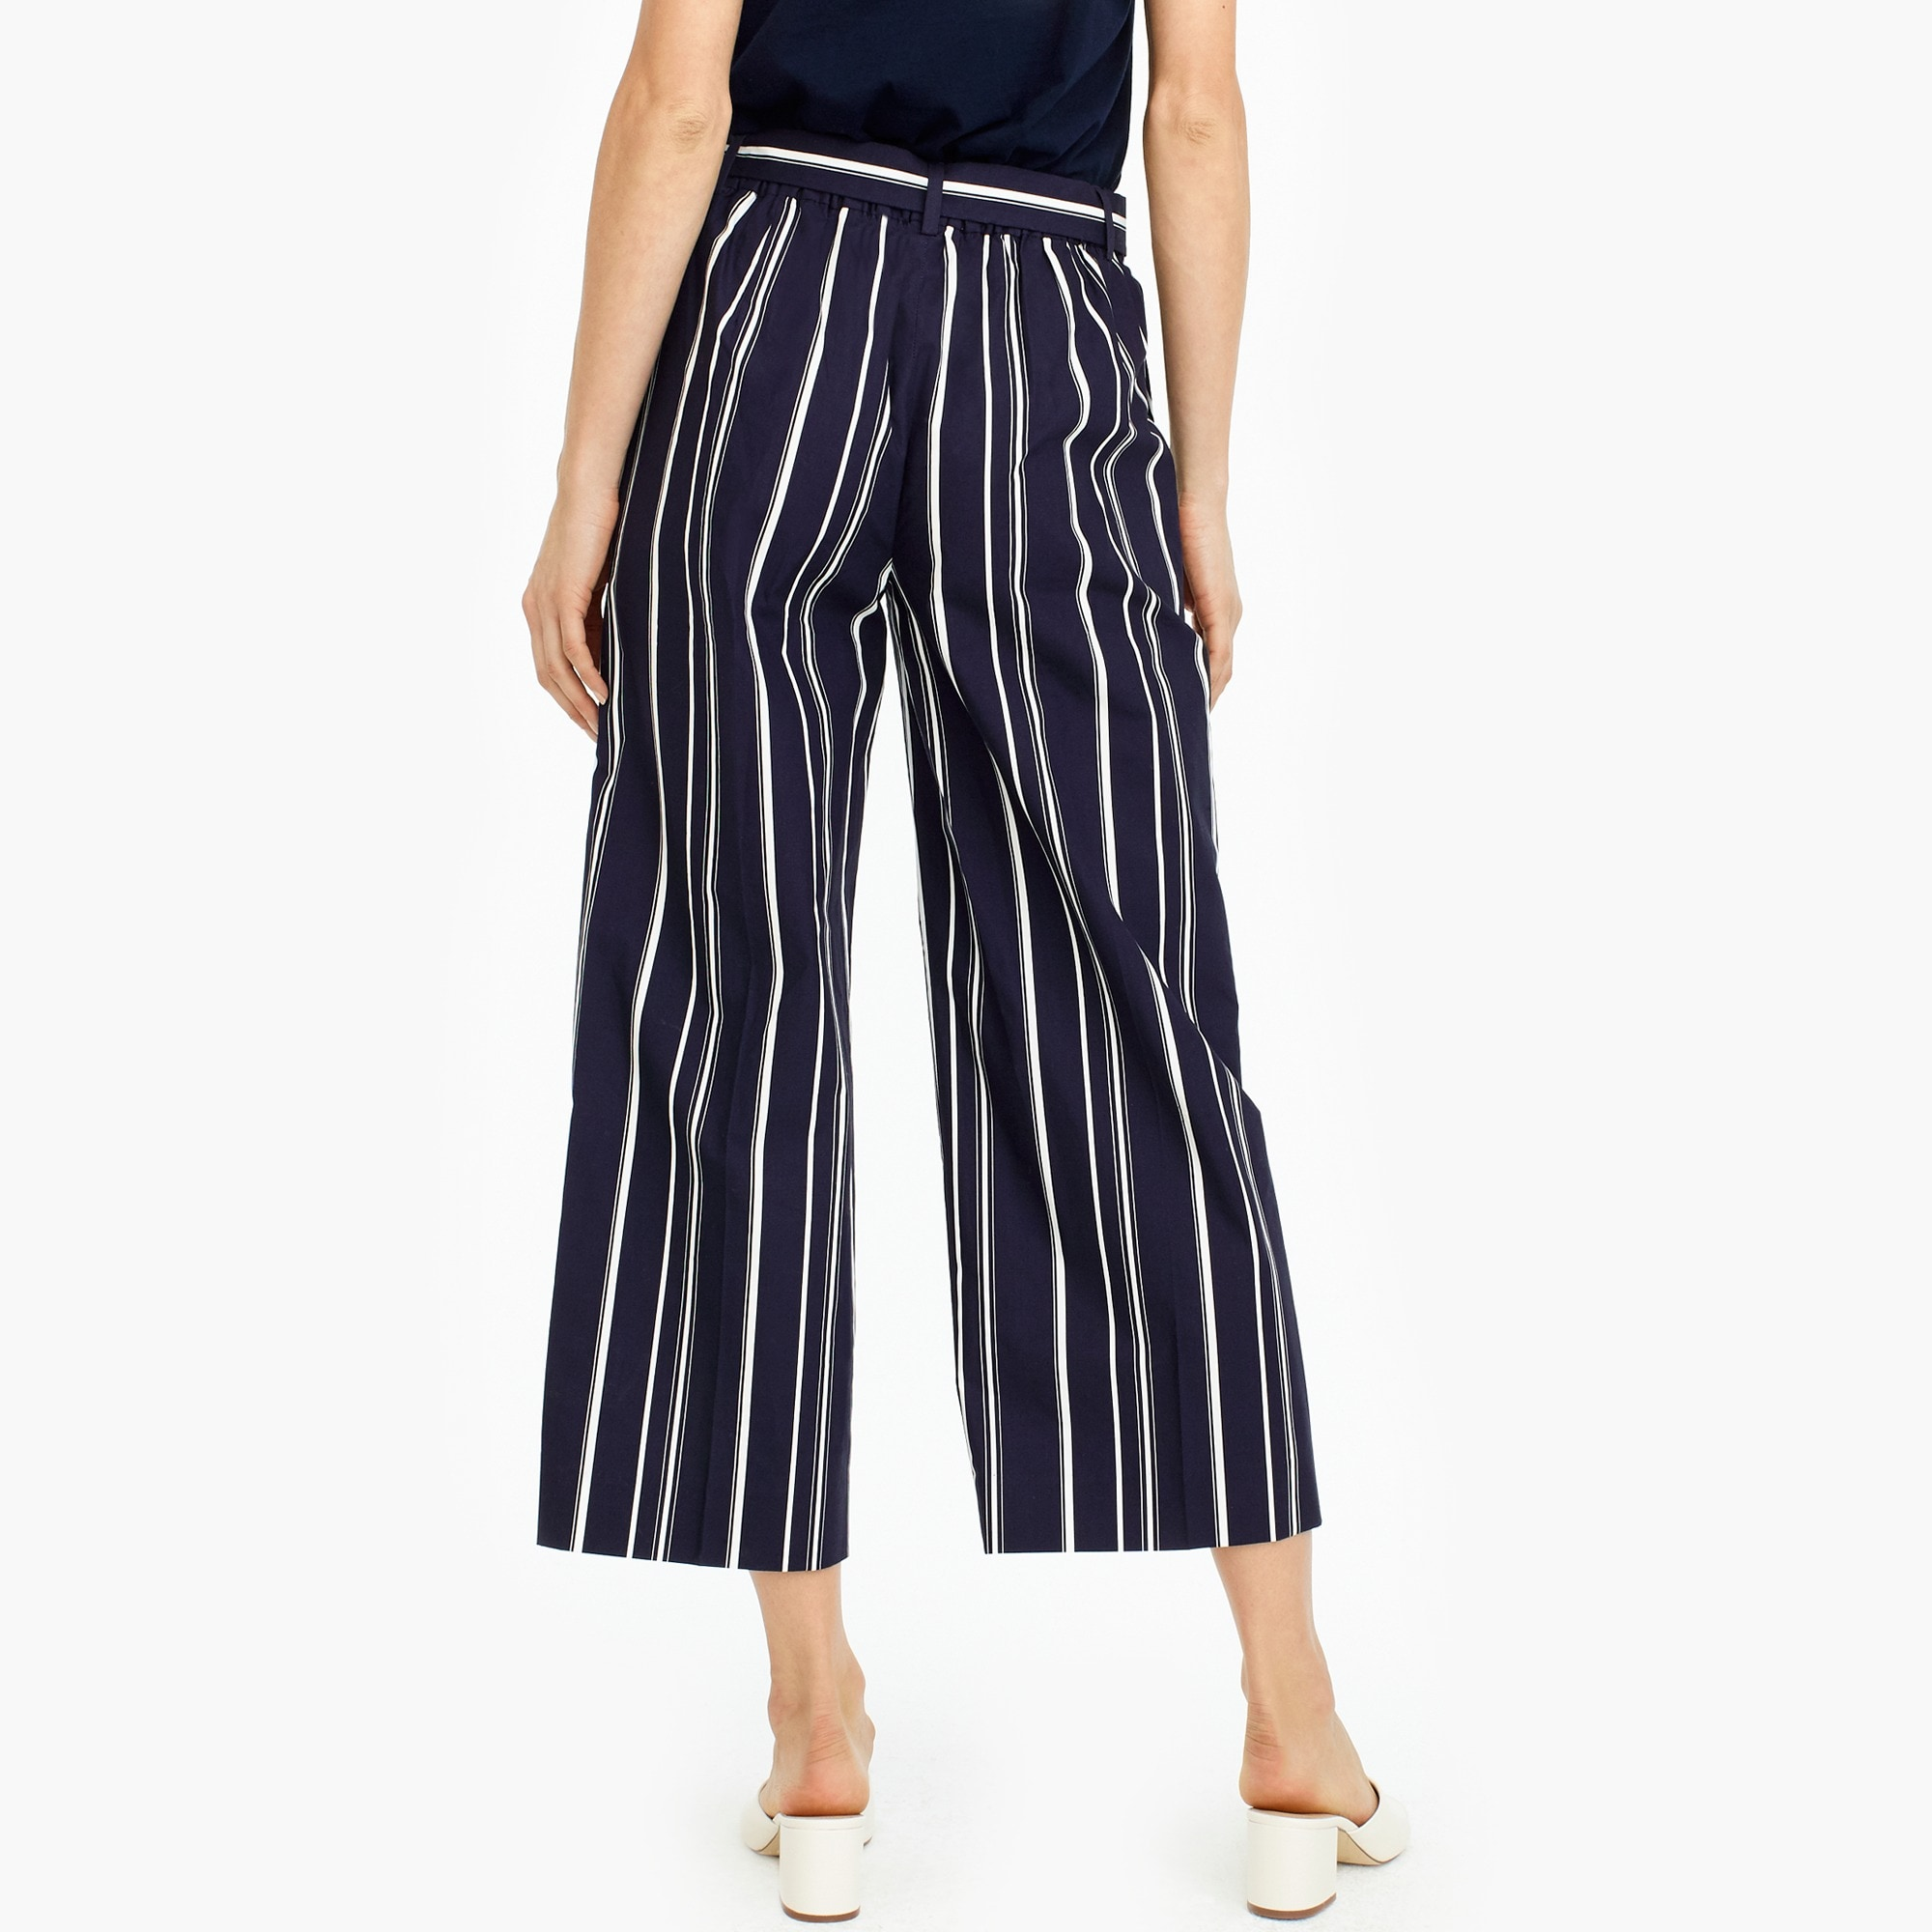 Image 4 for Tall wide-leg cropped pant in stripe